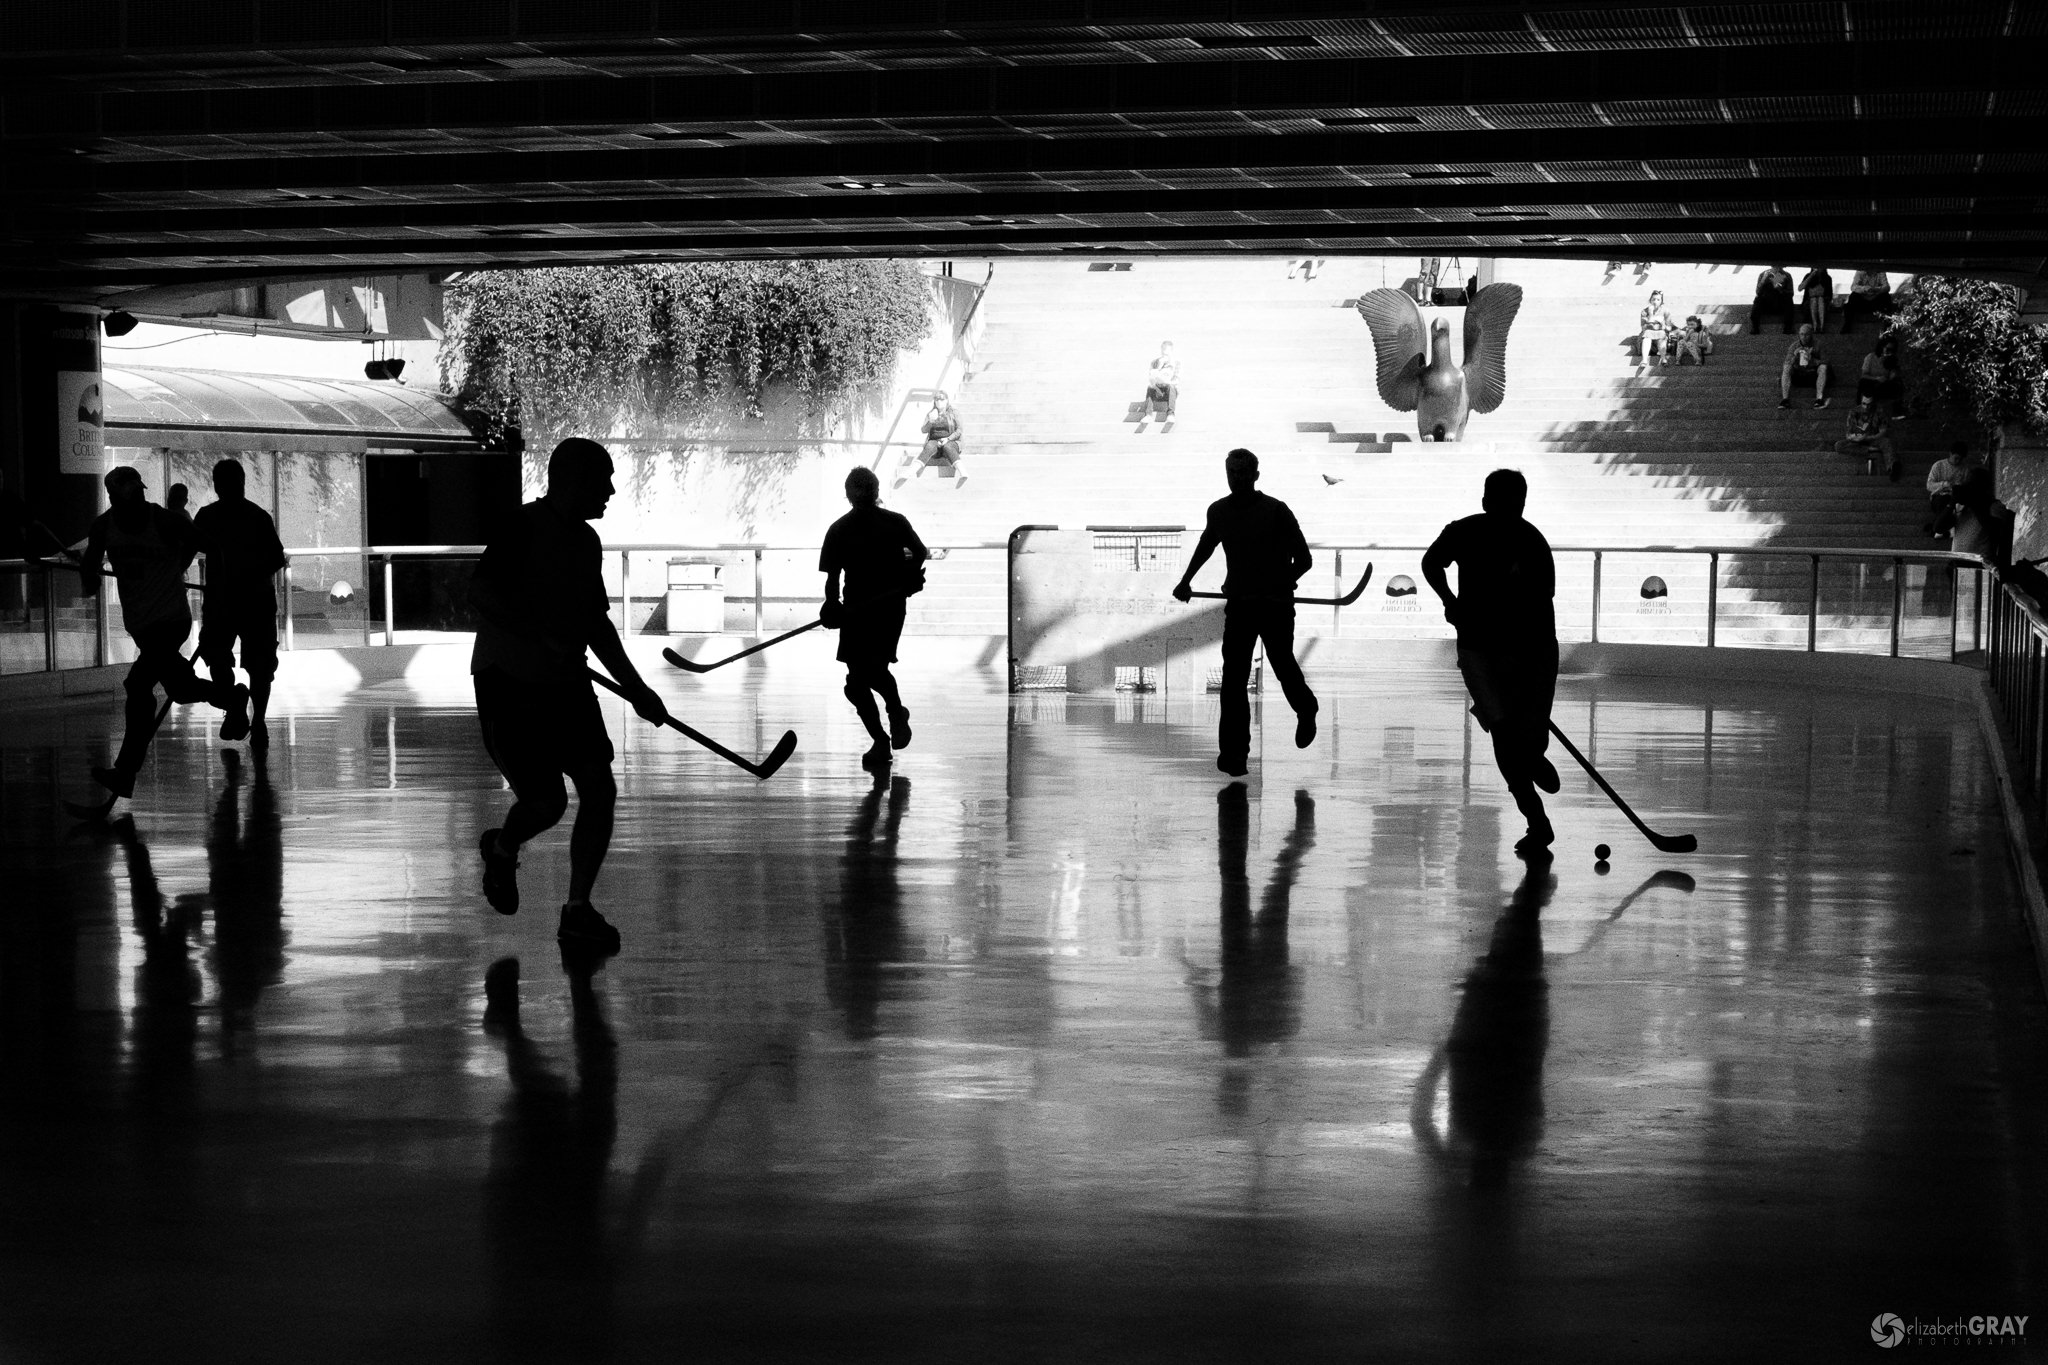 Ball Hockey Silhouettes - Sometimes it takes several shots to avoid merging subjects.